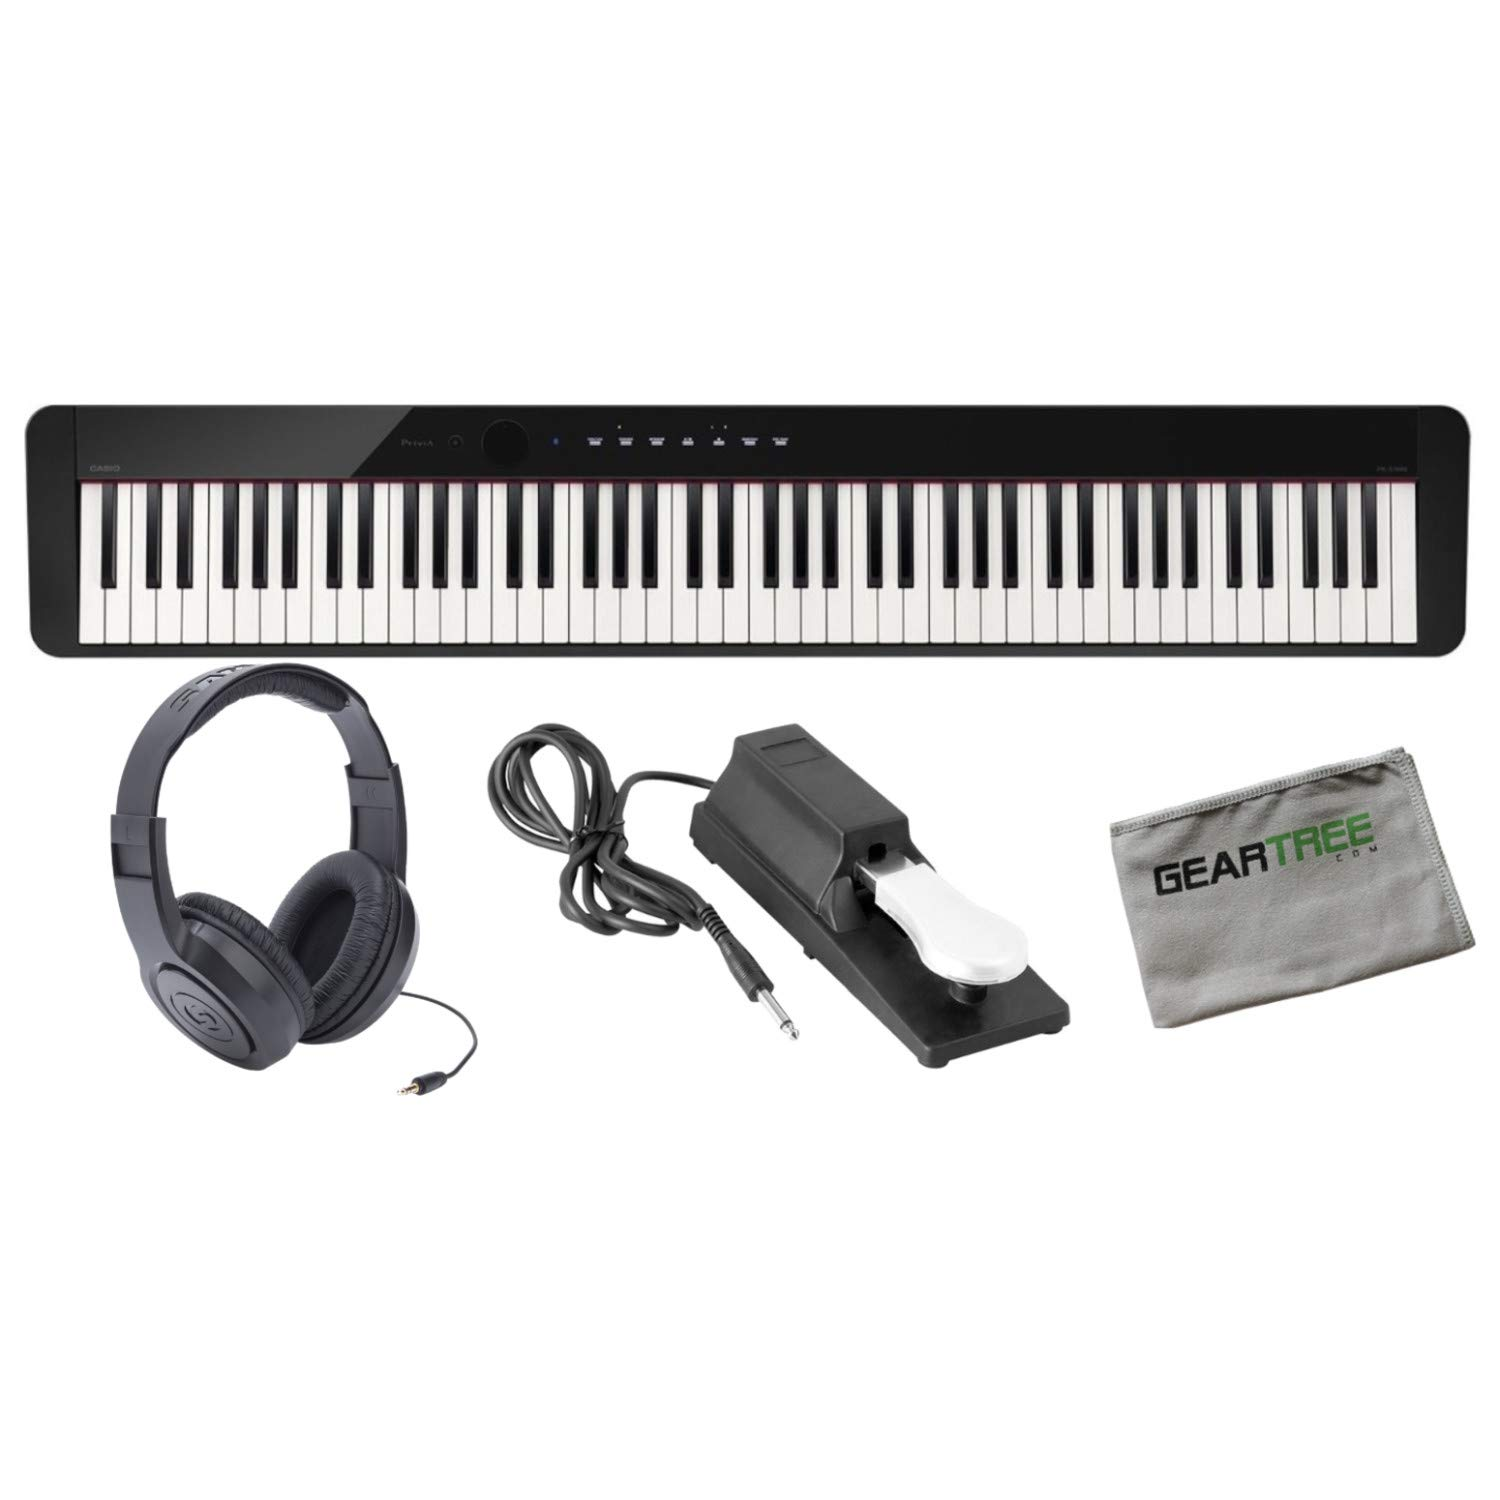 Casio PX-S1000BK 88 Weighted Key Digital Piano w/Cloth, Sustain Pedal, Headphon by Casio